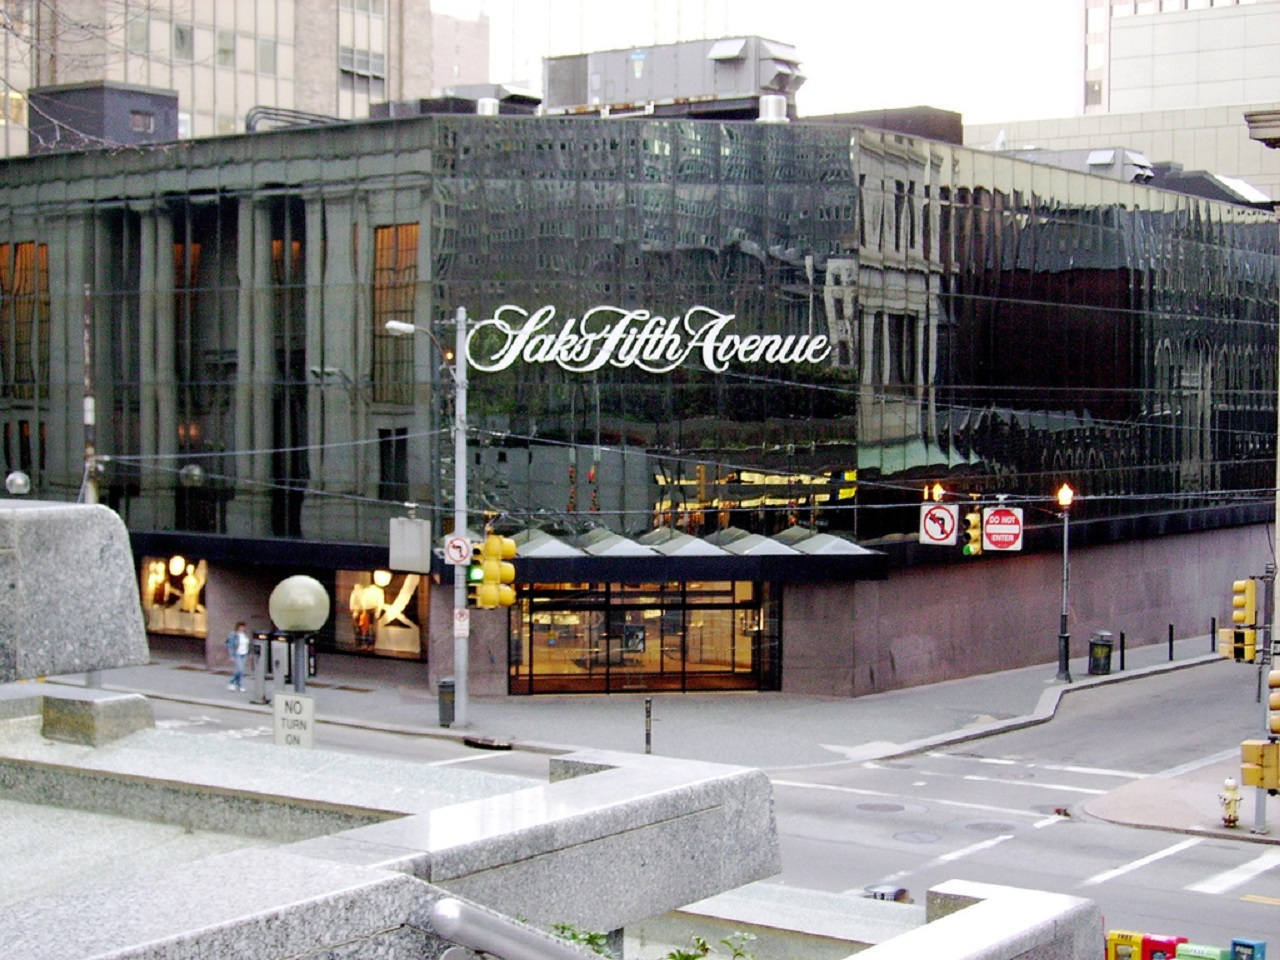 Saks_Fifth_Avenue_credit_via_wikimedia_commons